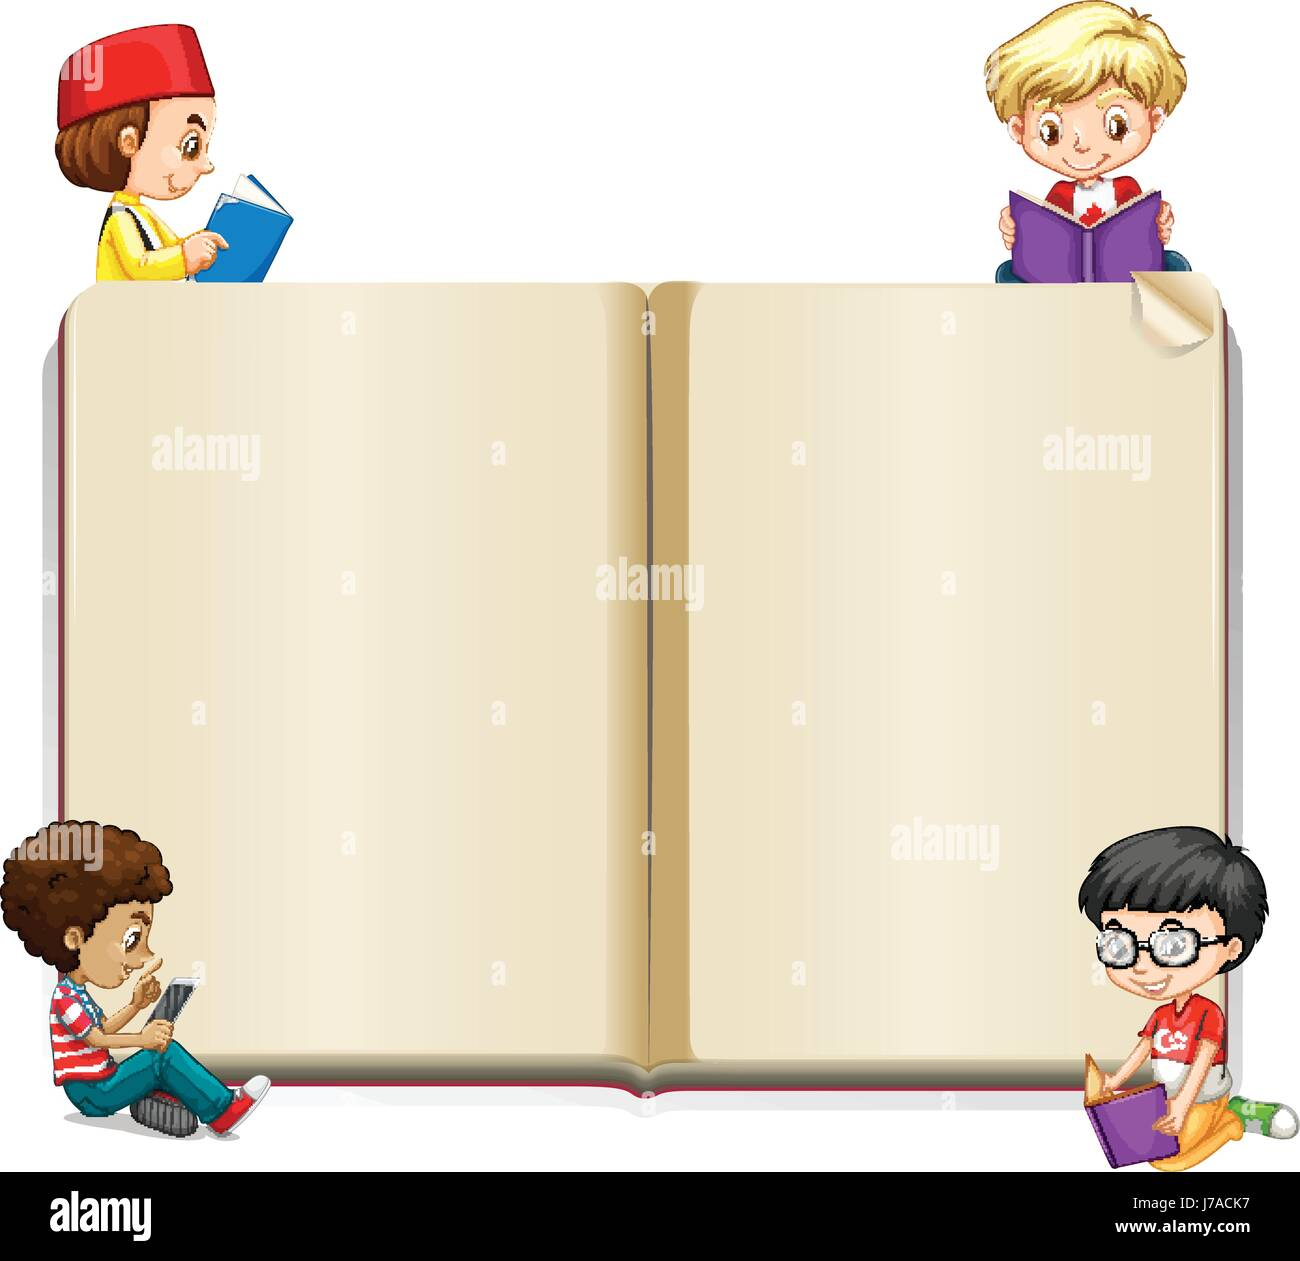 book template with kids reading illustration - Kids Book Template